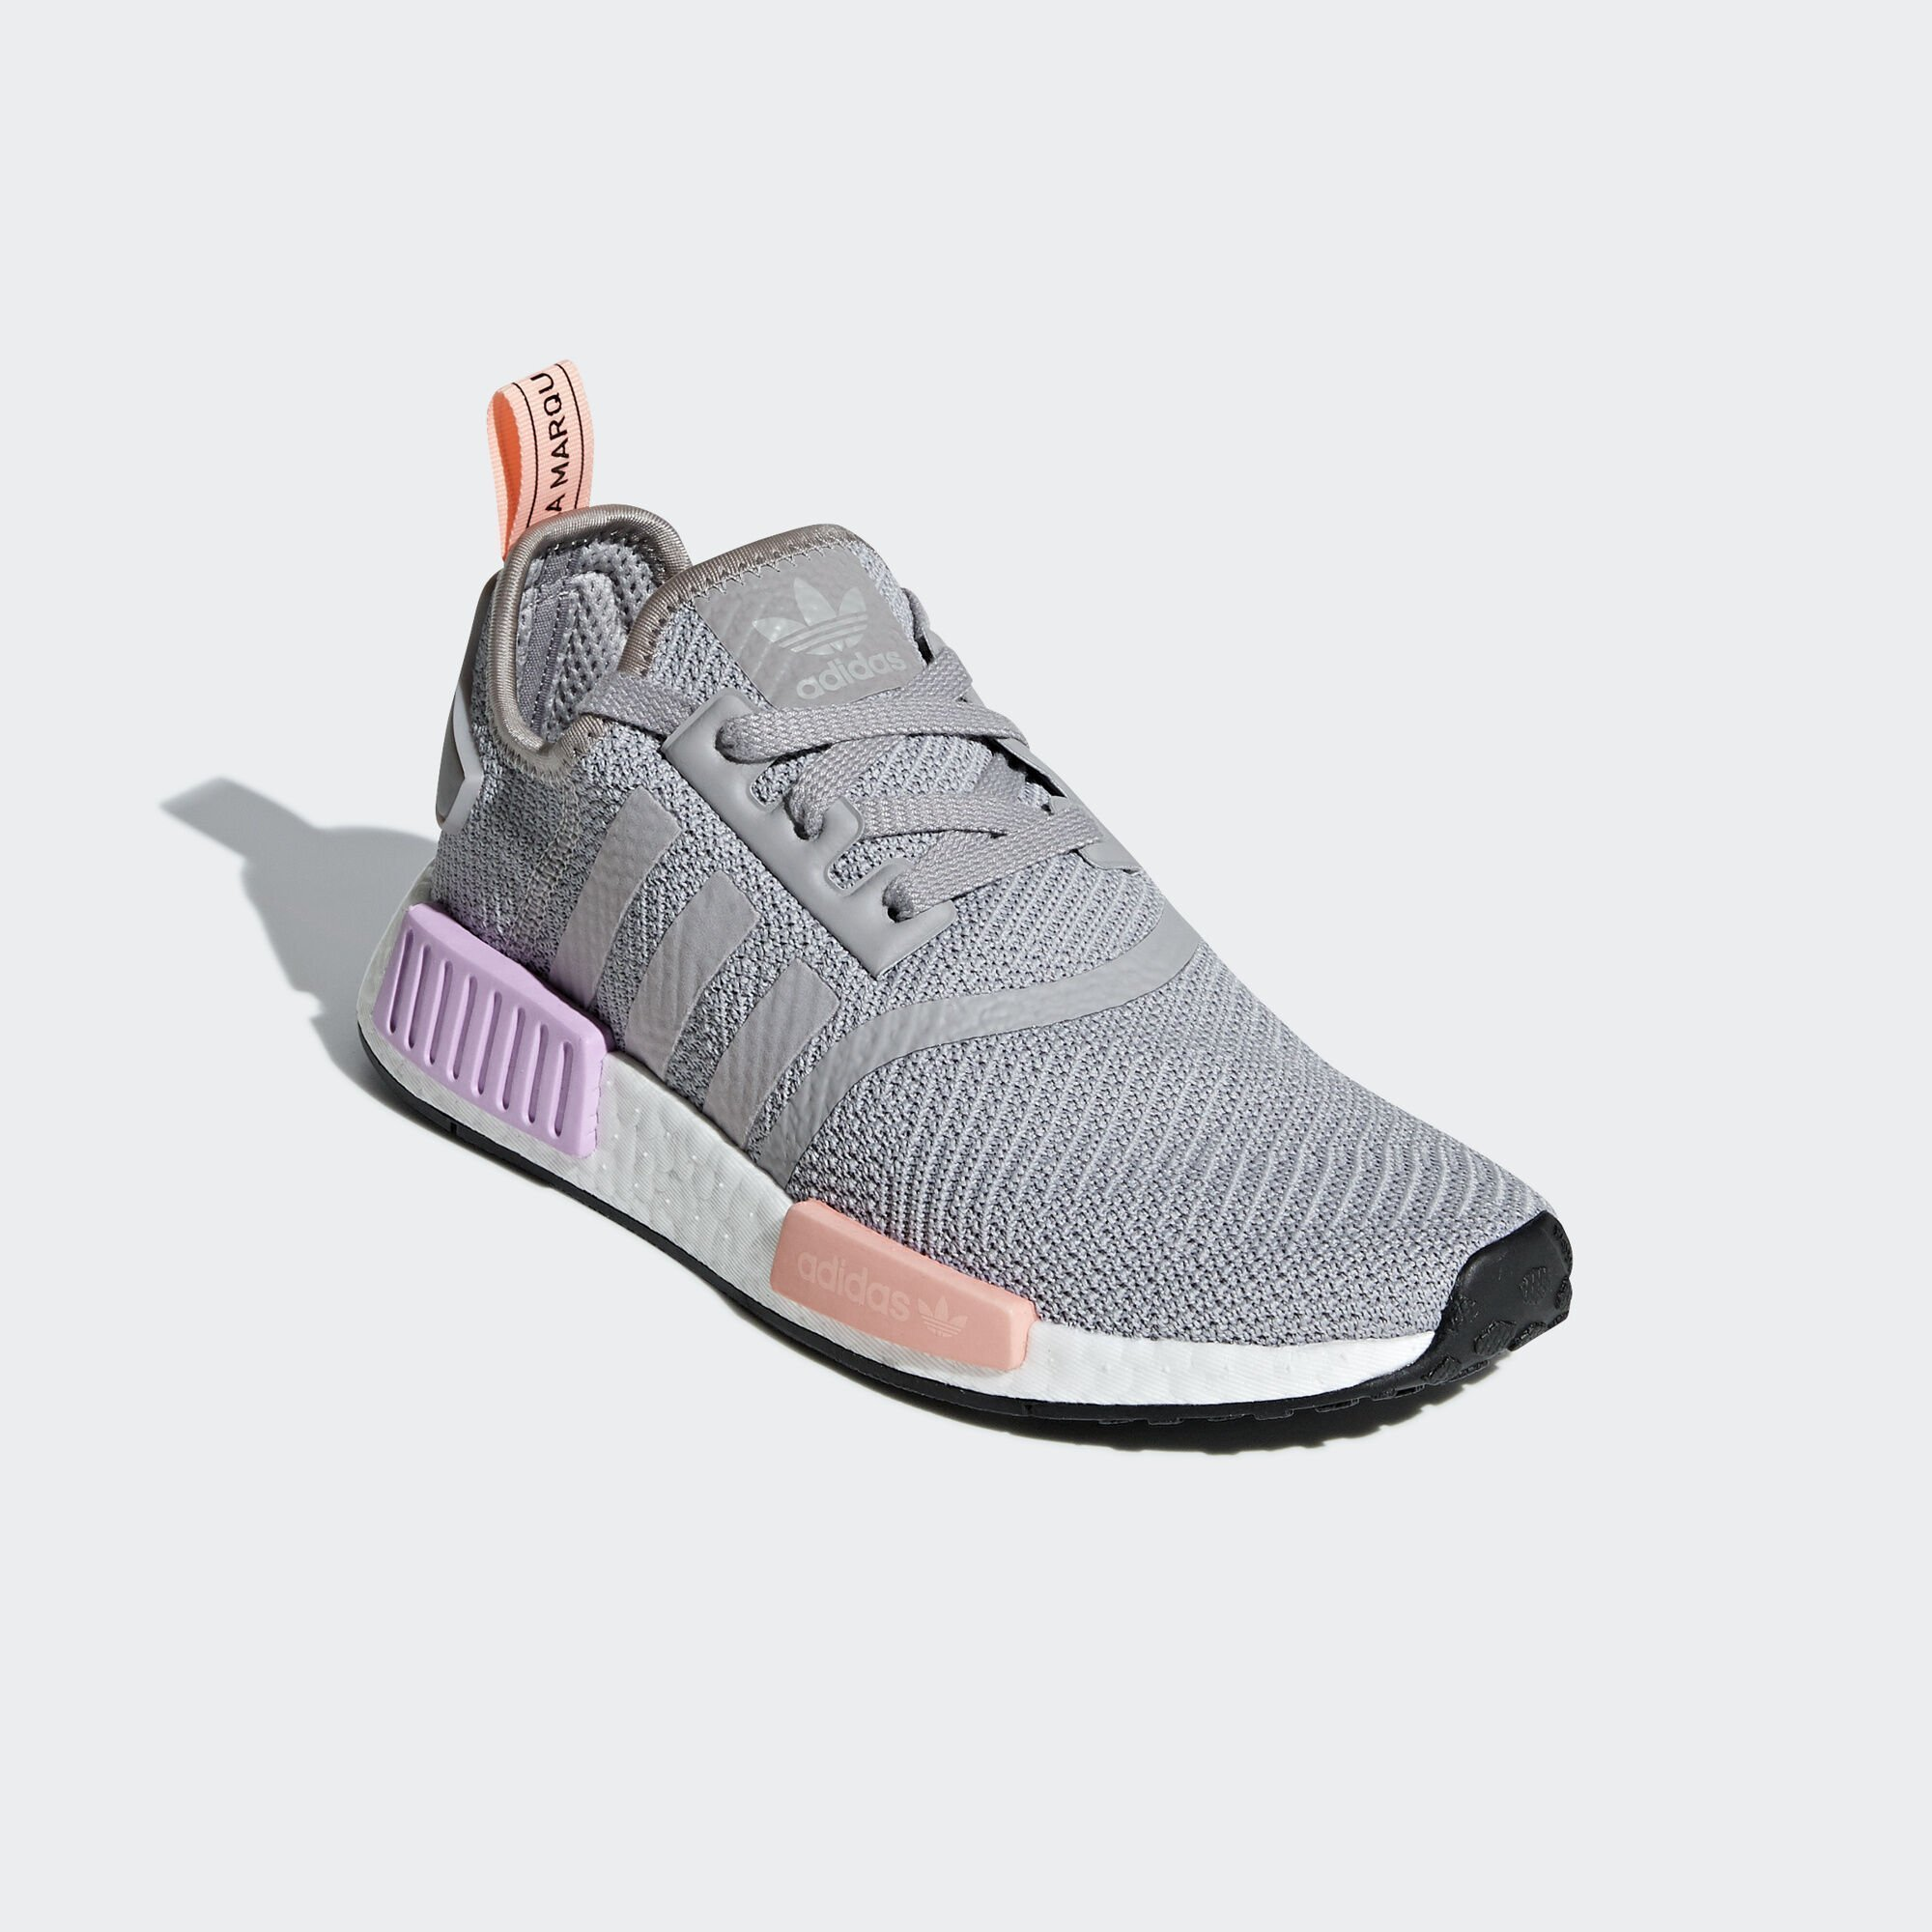 adidas  NMD R1 Light Granite Clear Orange (W) (B37647)